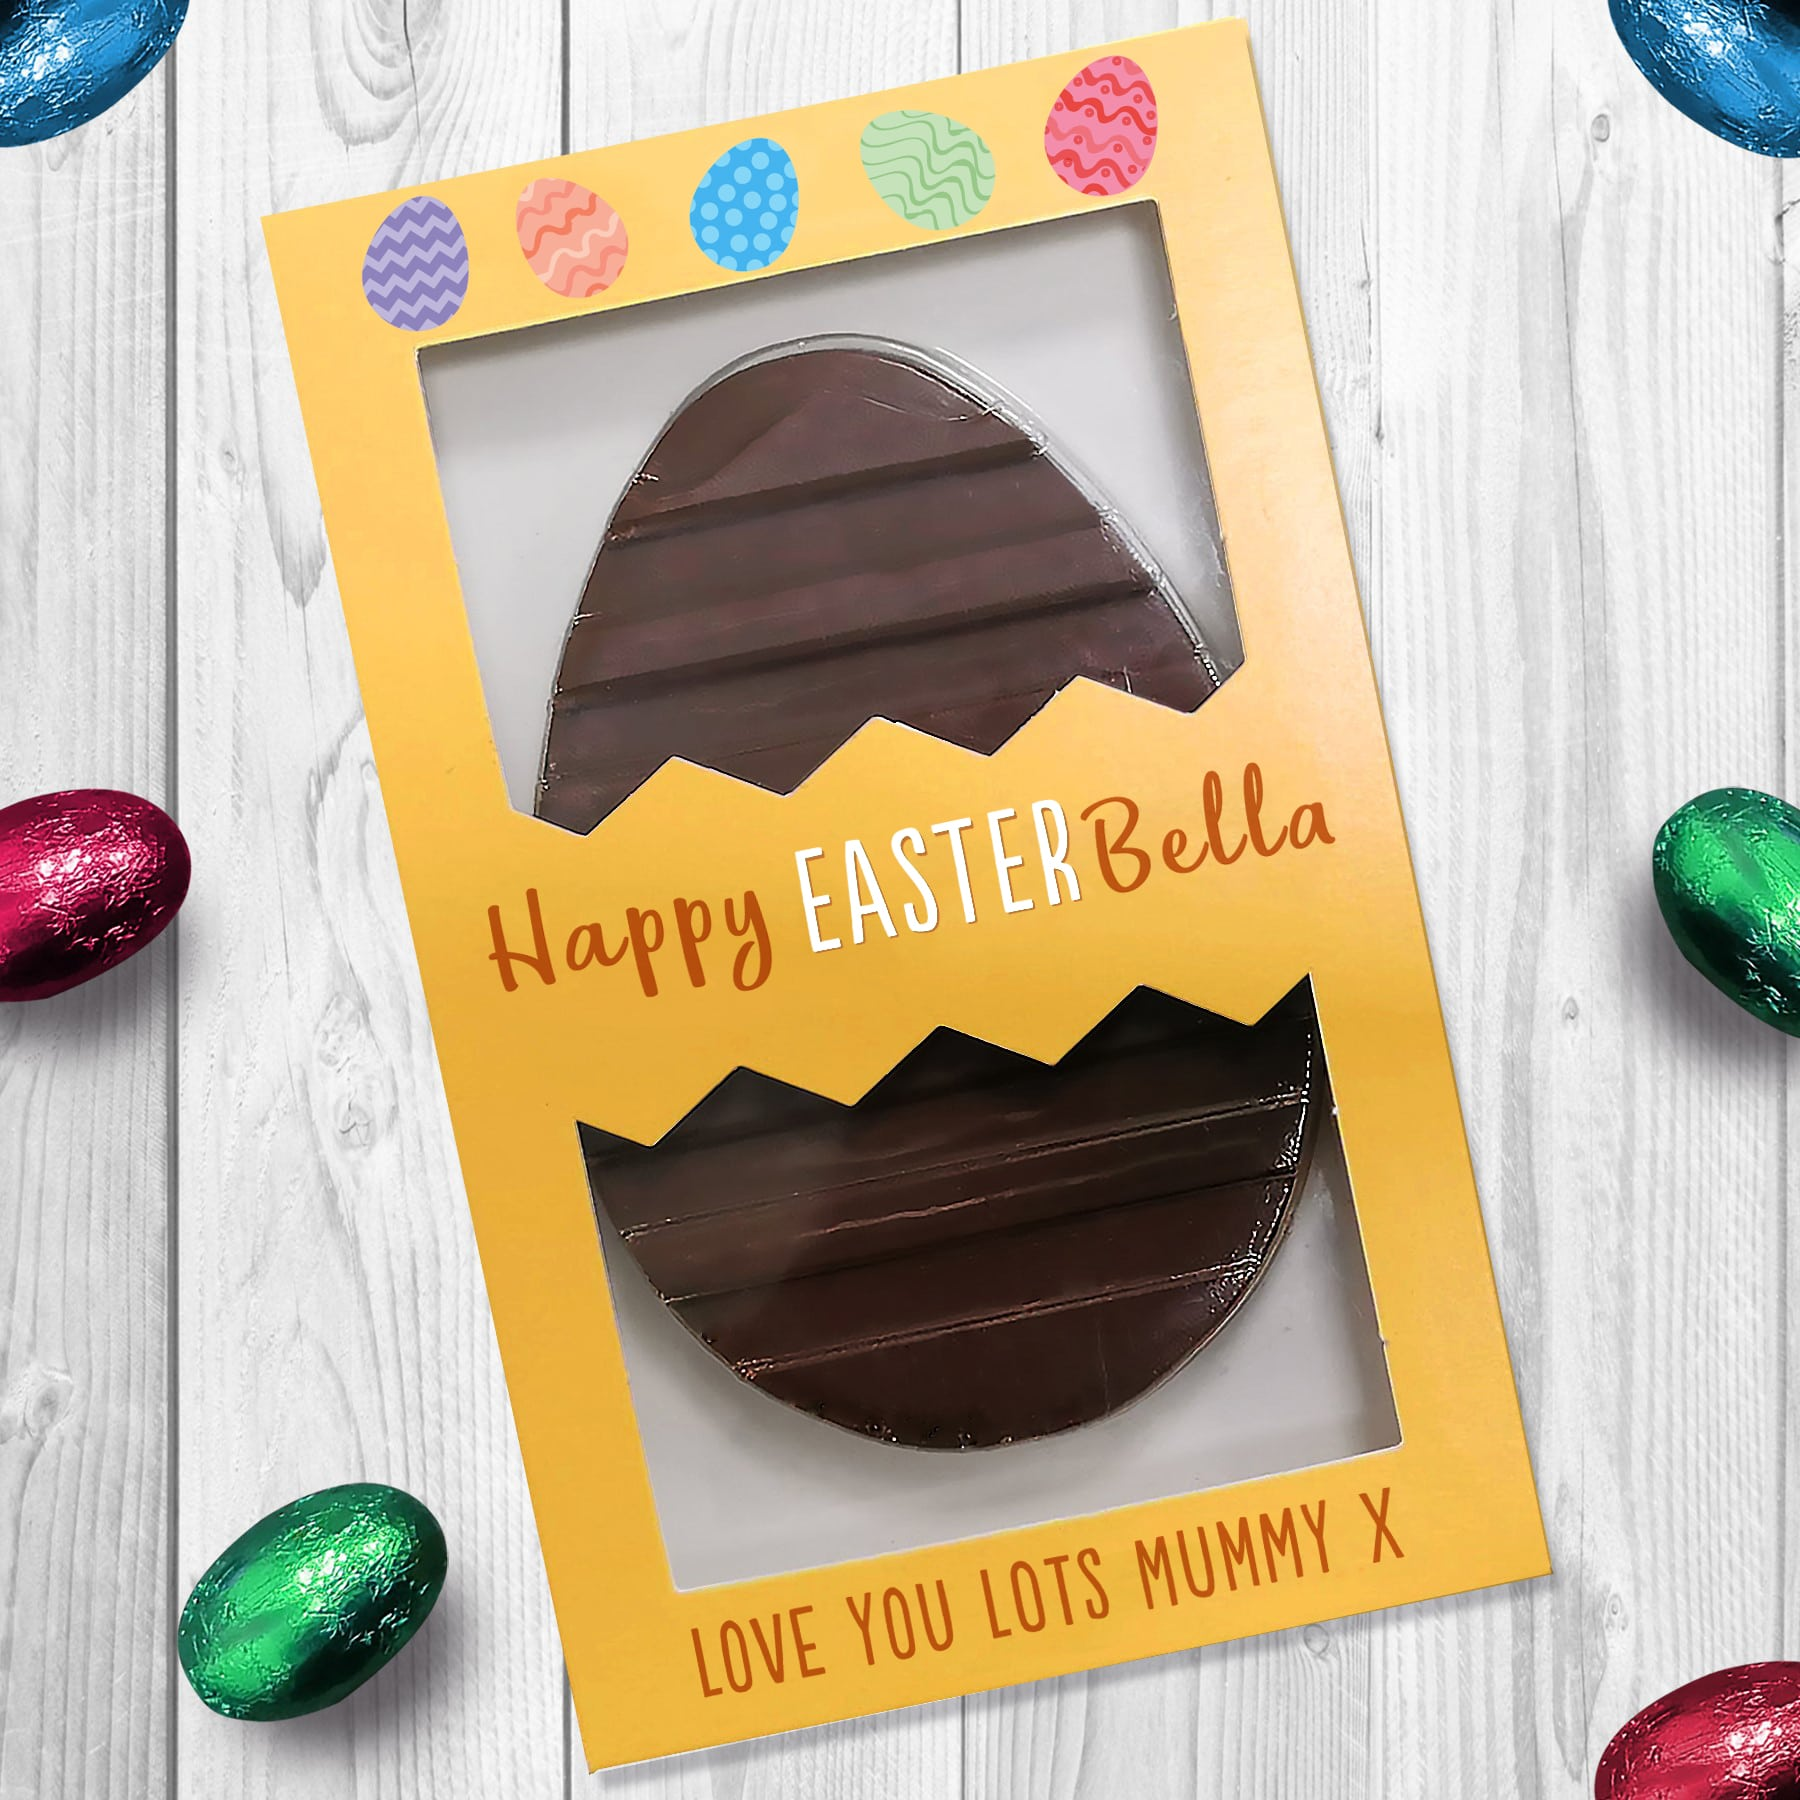 Letterbox 'Happy Easter' Flat Milk Chocolate Egg